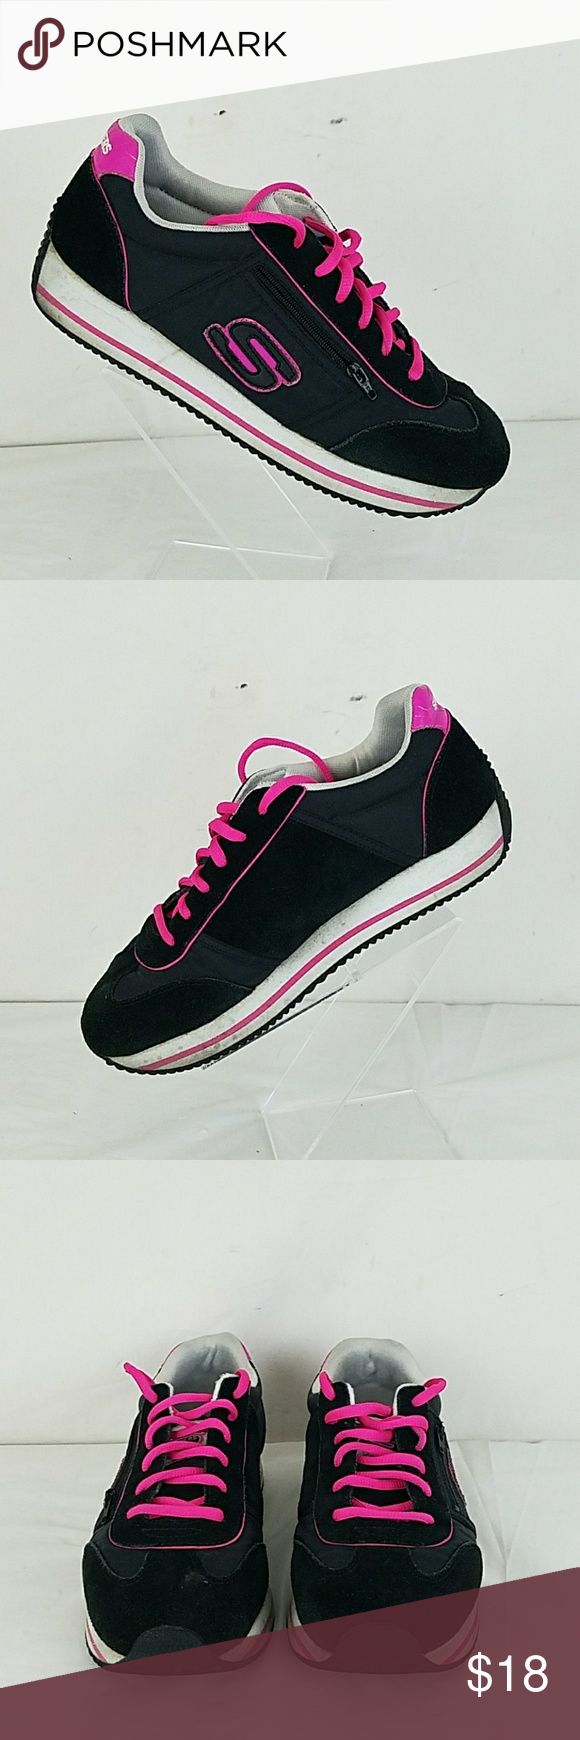 SKECHERS LEATHER & TEXTILE SIZE 7.5  ATHLETIC SHOES  PREOWNED